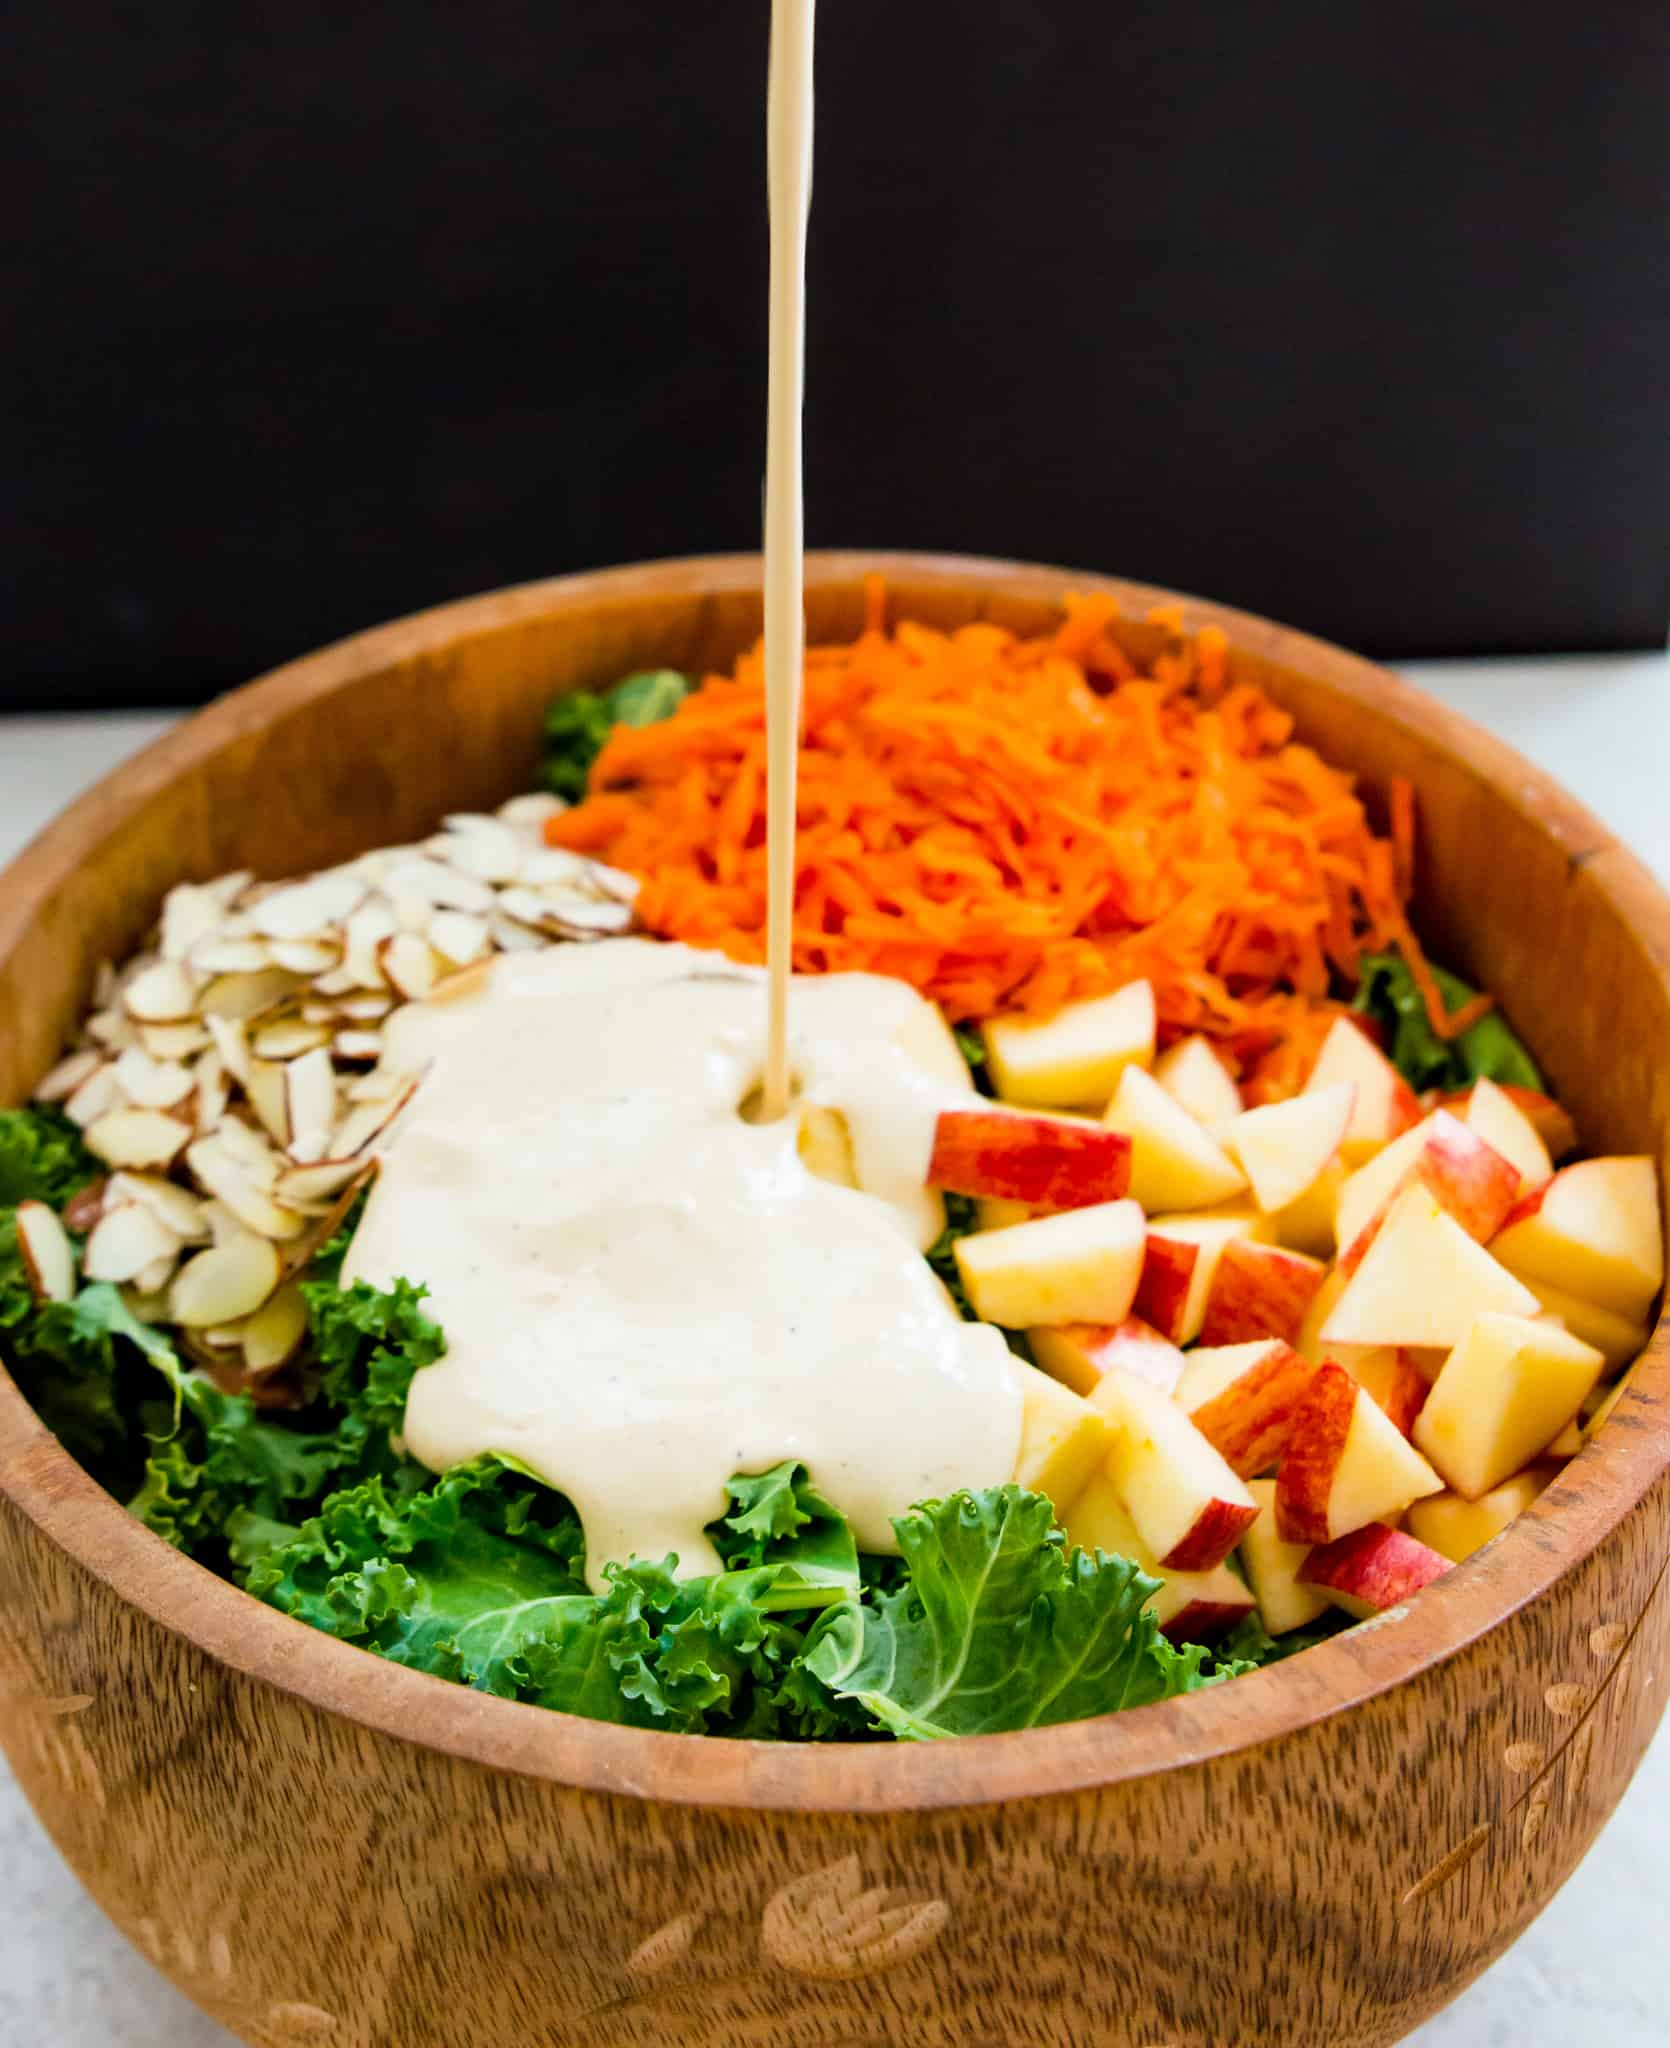 A creamy dressing poured over a wooden mixing bowl of kale, almonds, carrots, and apples | Kale Slaw with Apples